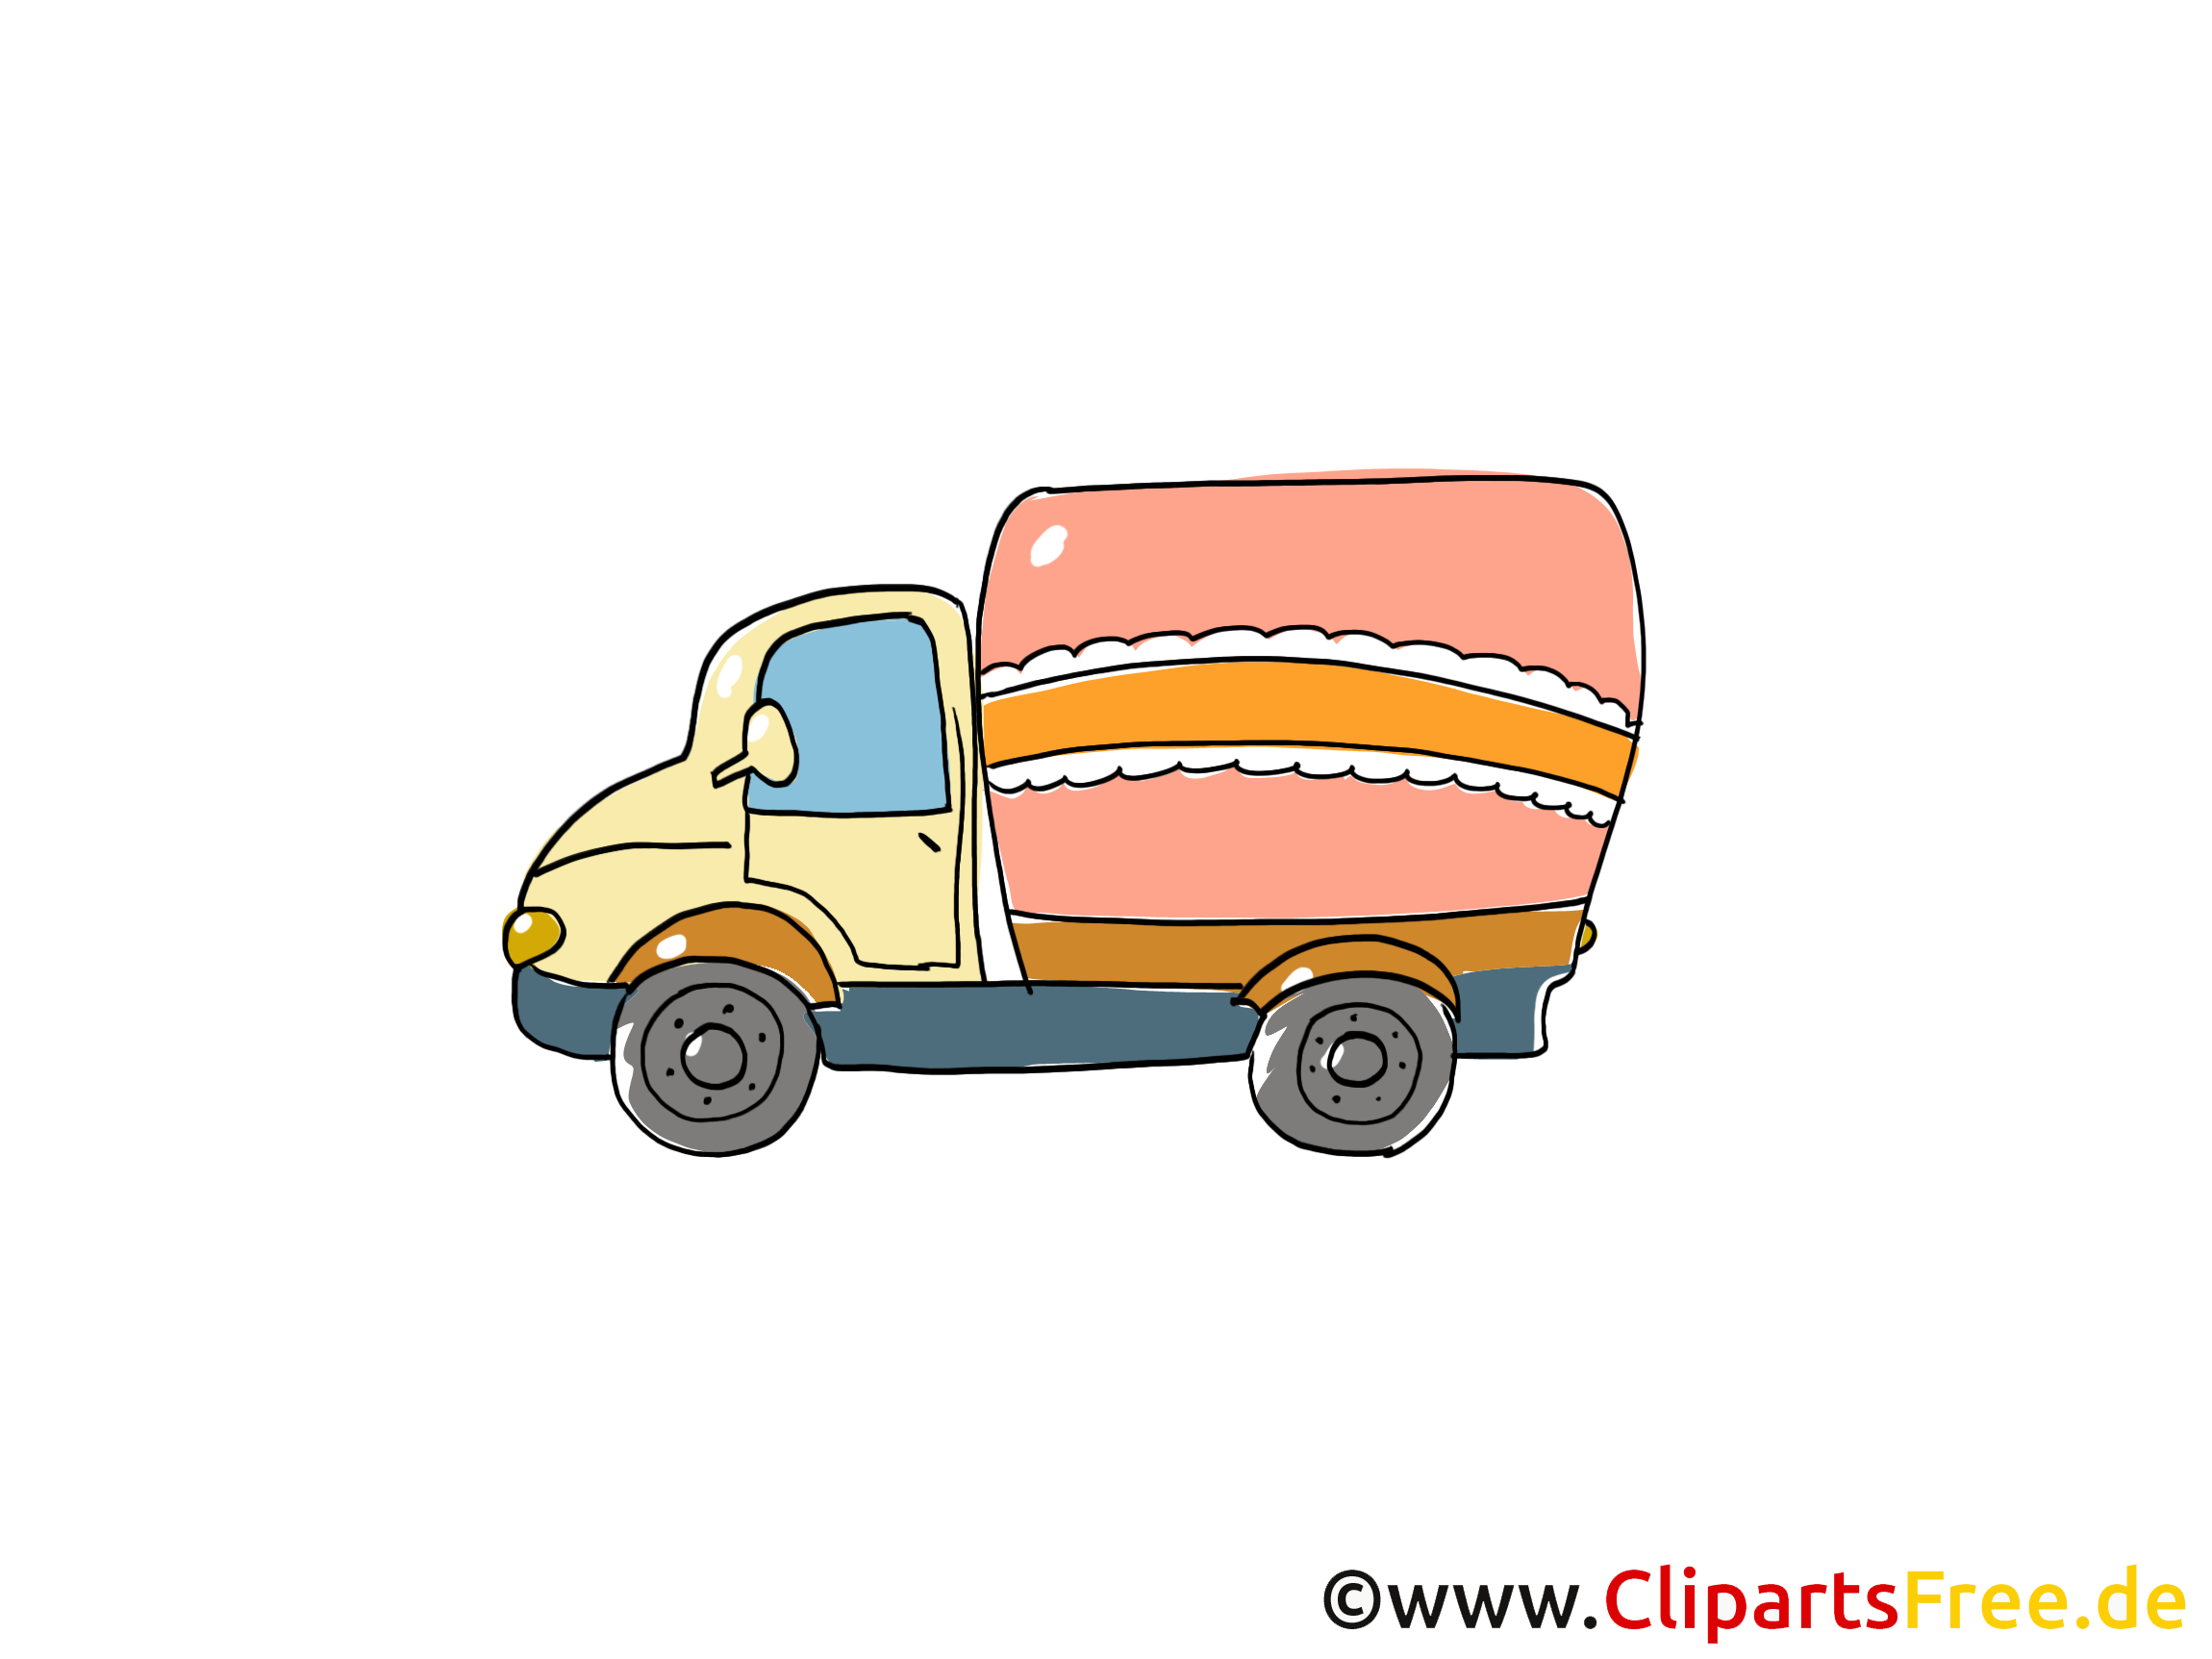 LKW Clipart, Bild, Cartoon, Comic, Grafik